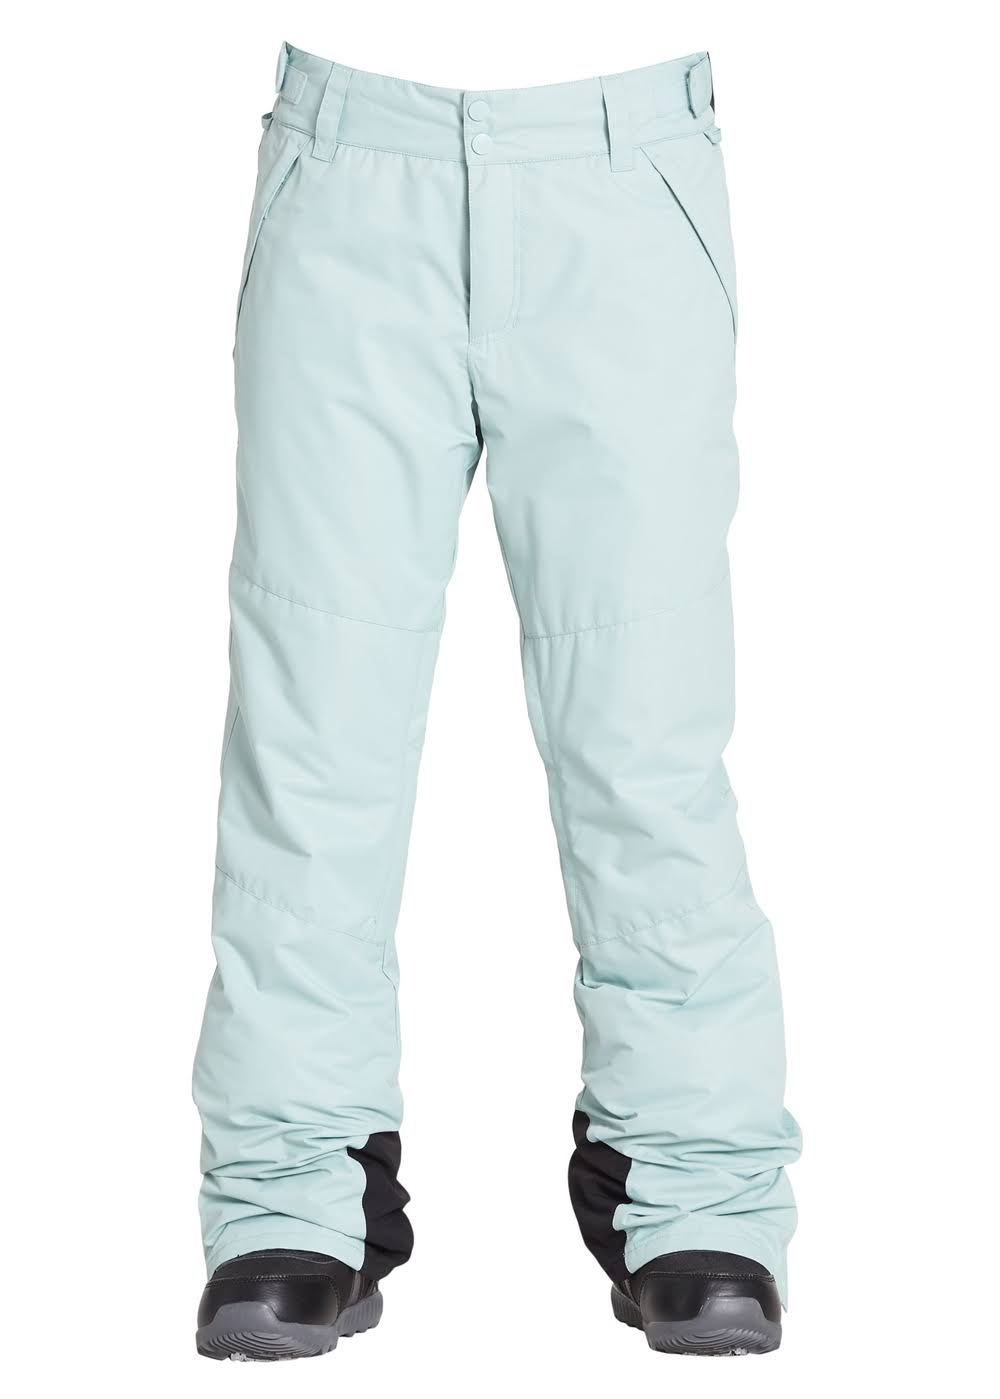 Billabong Women's Malla Snow Pant